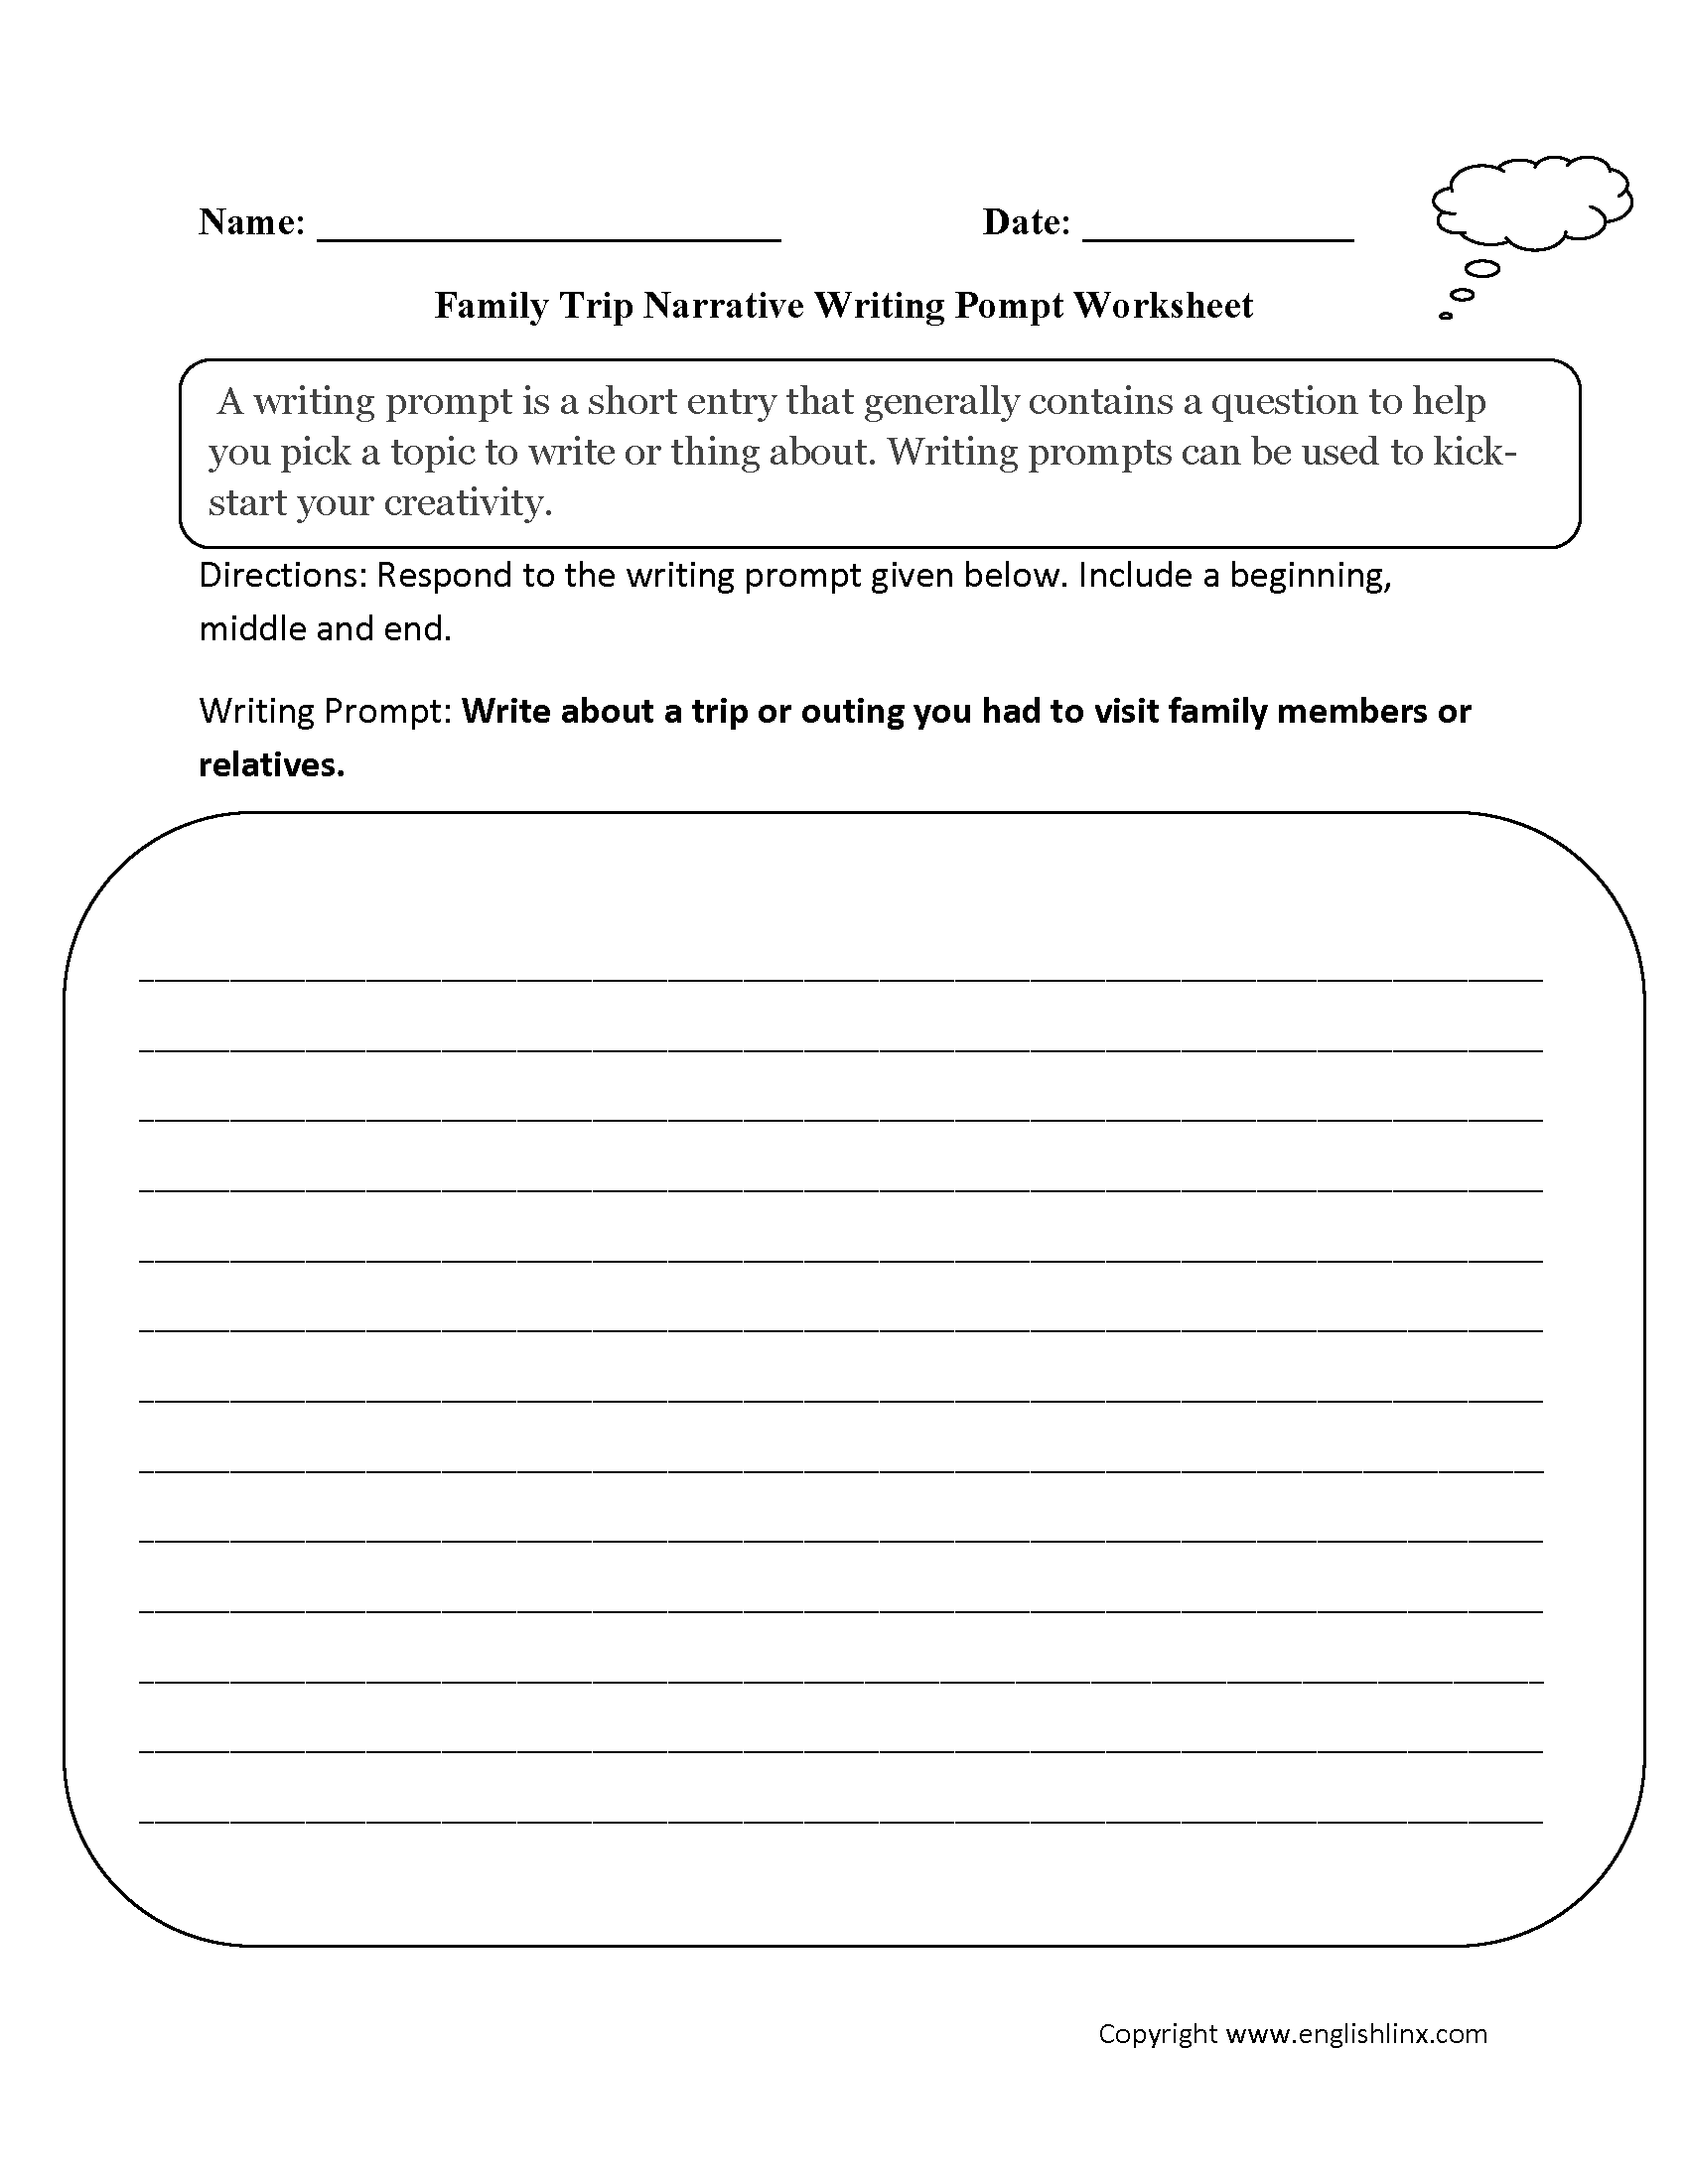 com writing prompts worksheets narrative writing prompts worksheets